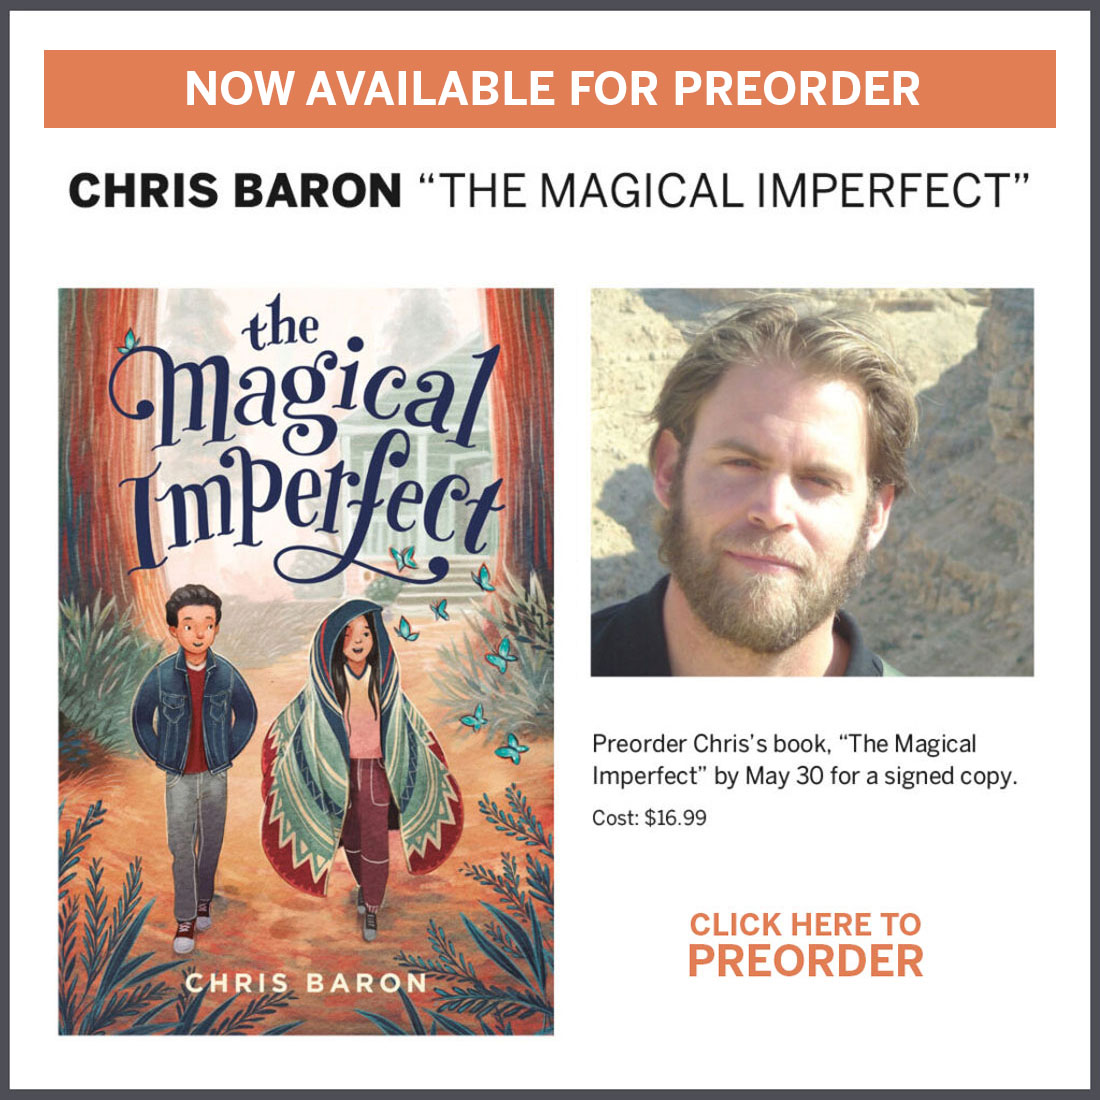 Chris Baron Preorder The Magical Imperfect